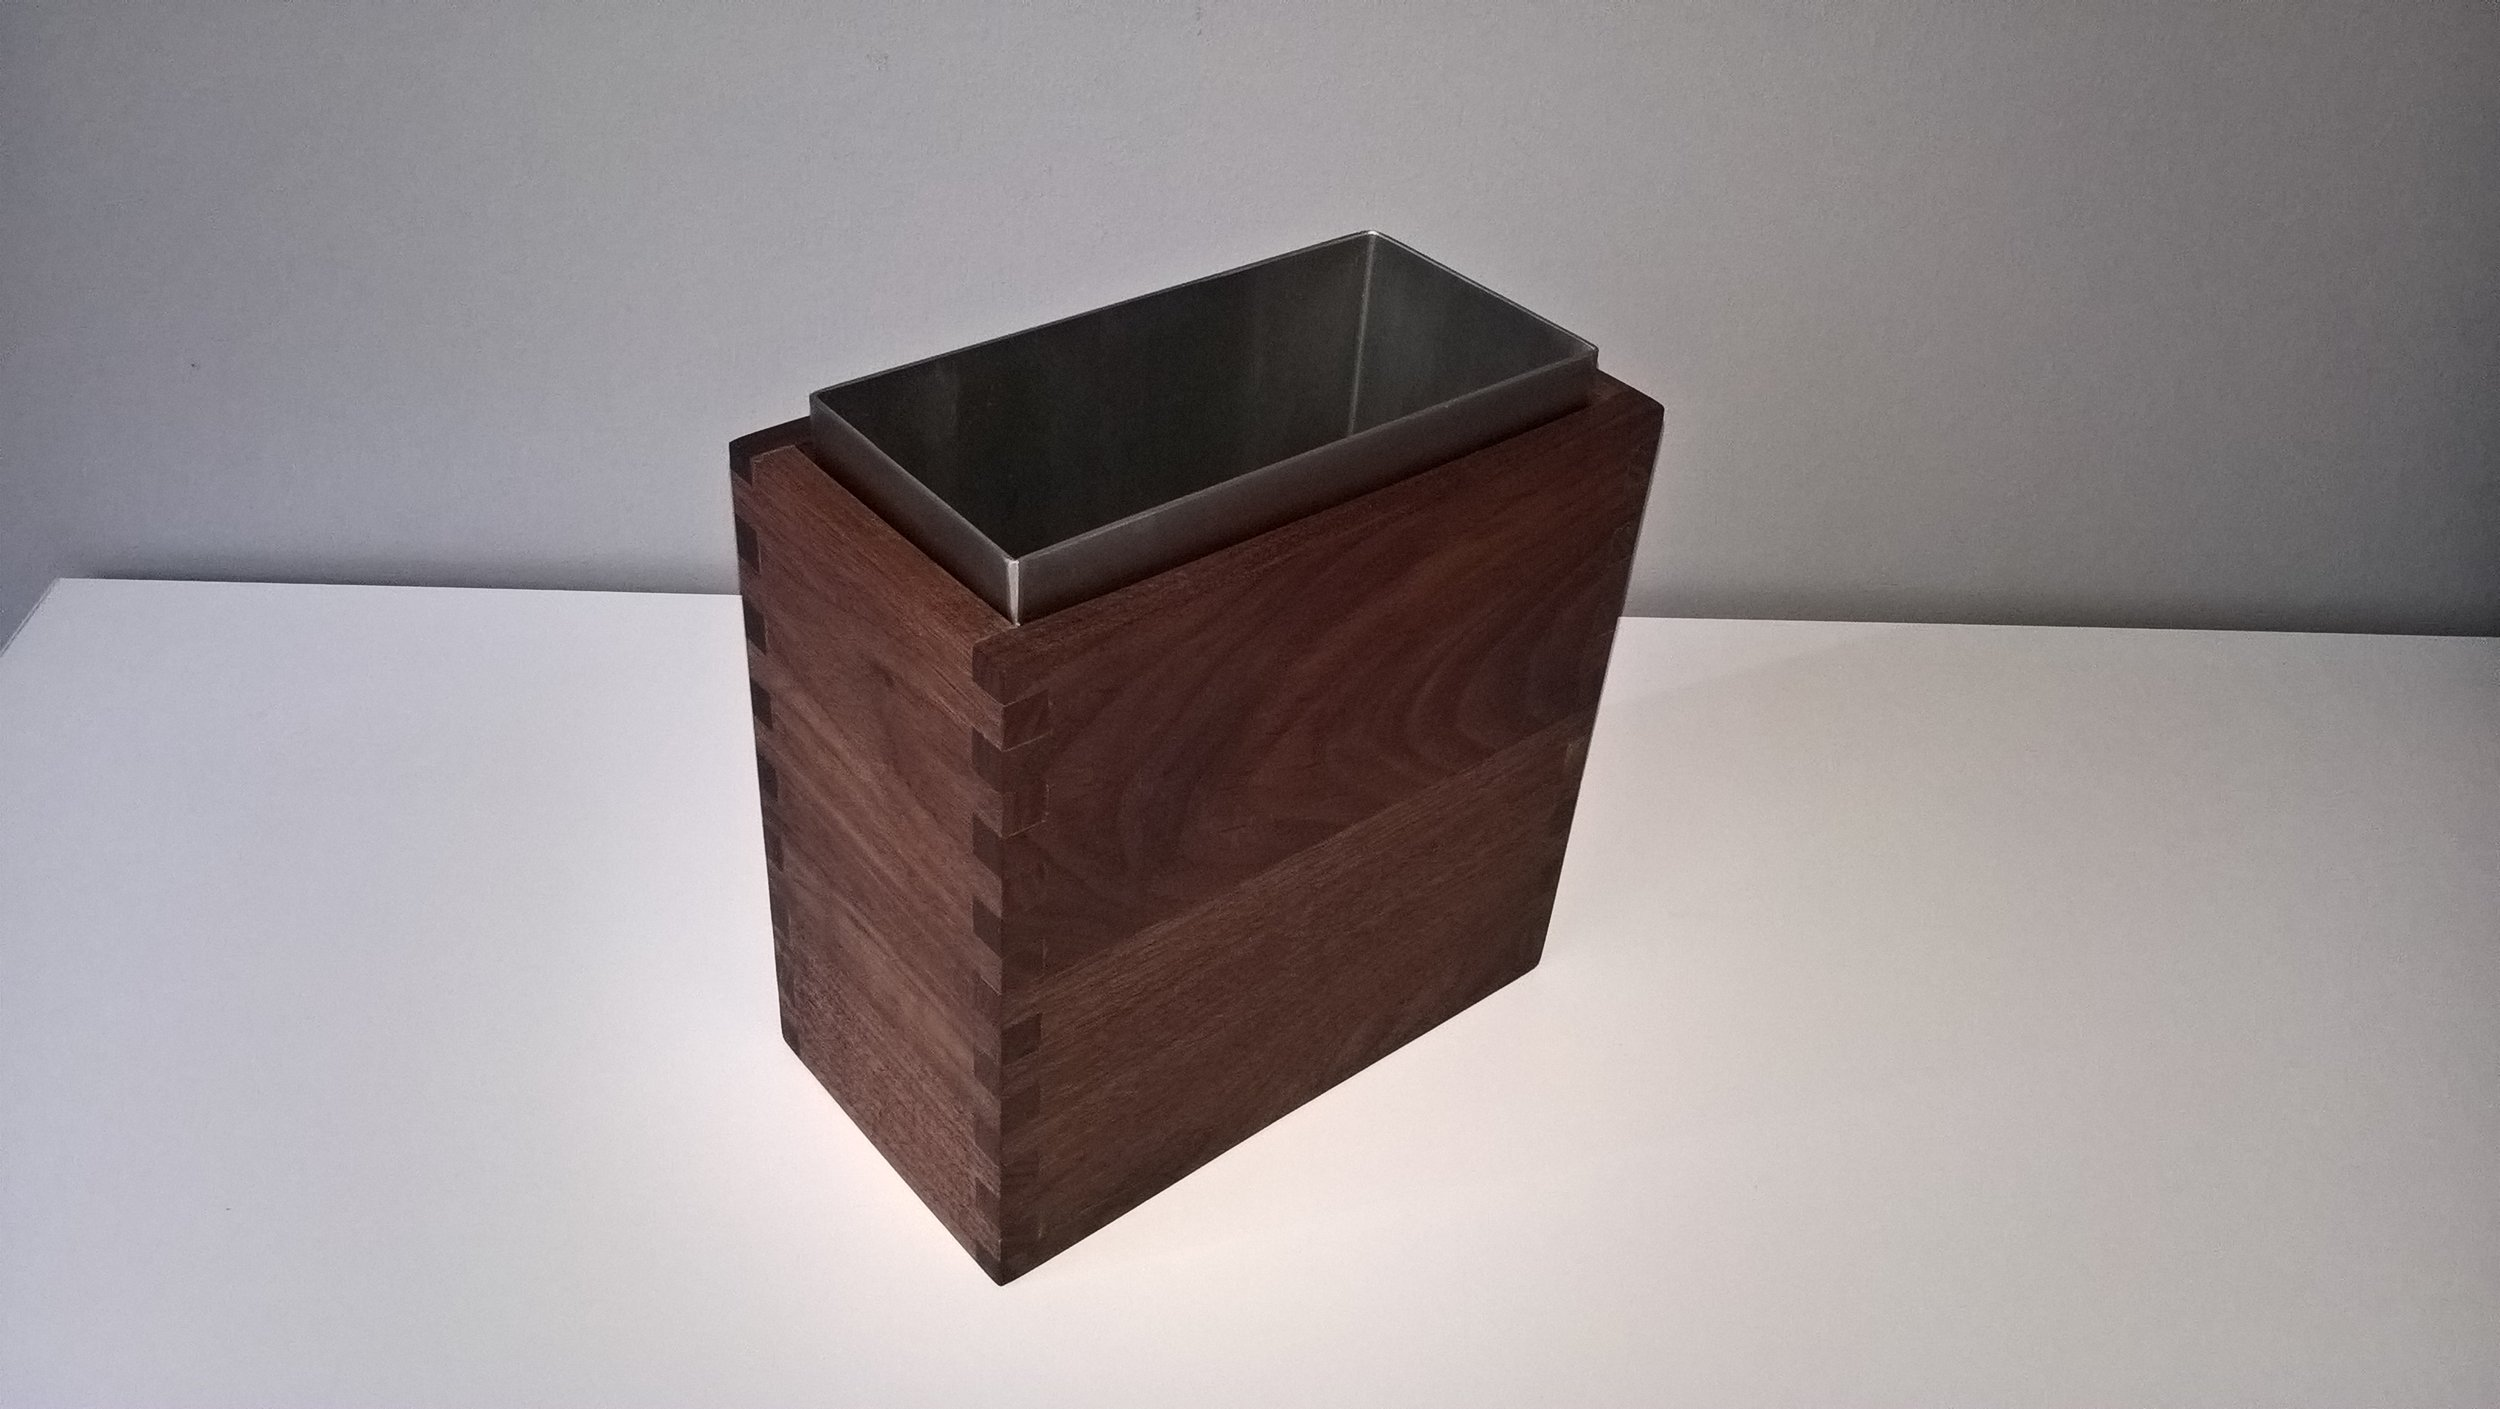 Penlau®  dishbox - single Træ box, olieret valnød 2 dele kr. 825,- Varenr. Box2-888-07-vase